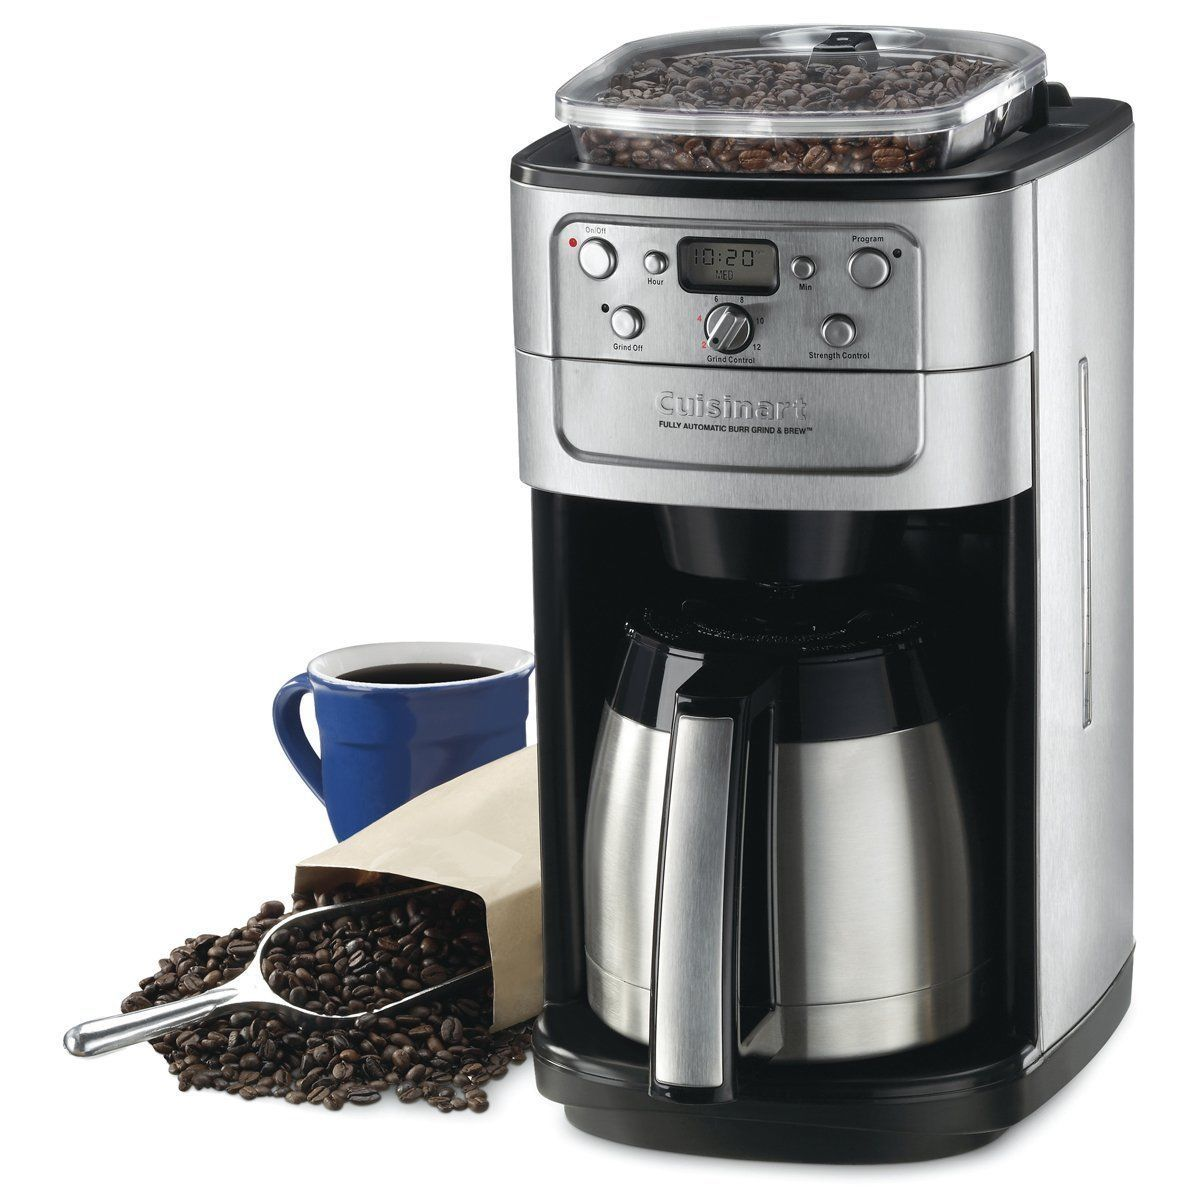 Details About Coffee Maker With Grinder Automatic Whole Bean 12 Cup Machine Quick Touch Brewer With Images Cuisinart Coffee Maker Coffee Maker With Grinder Best Coffee Maker